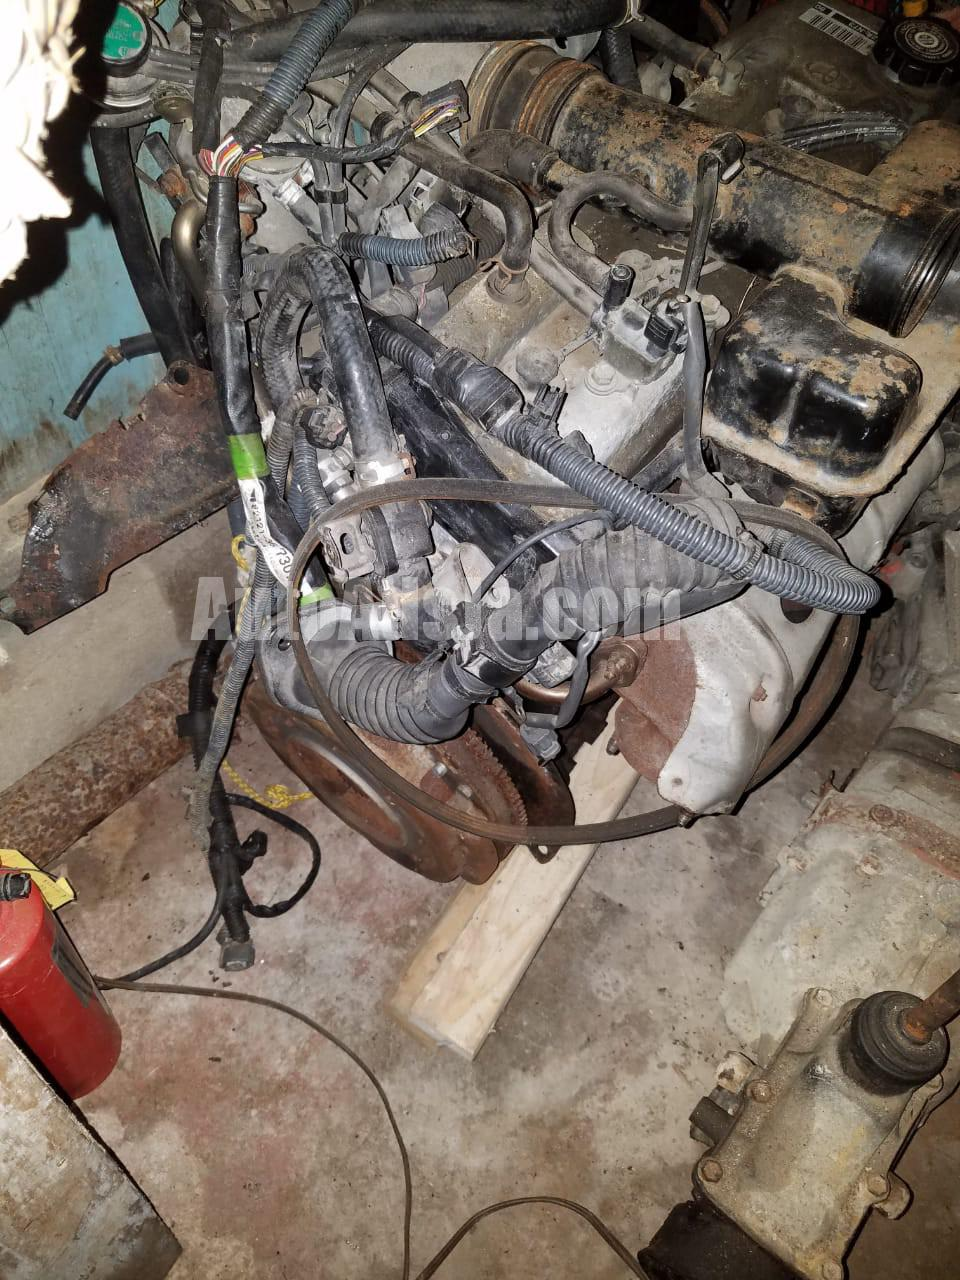 hight resolution of 1999 toyota tacoma gearbox computer box and engine available for sale for sale in kingston st andrew jamaica